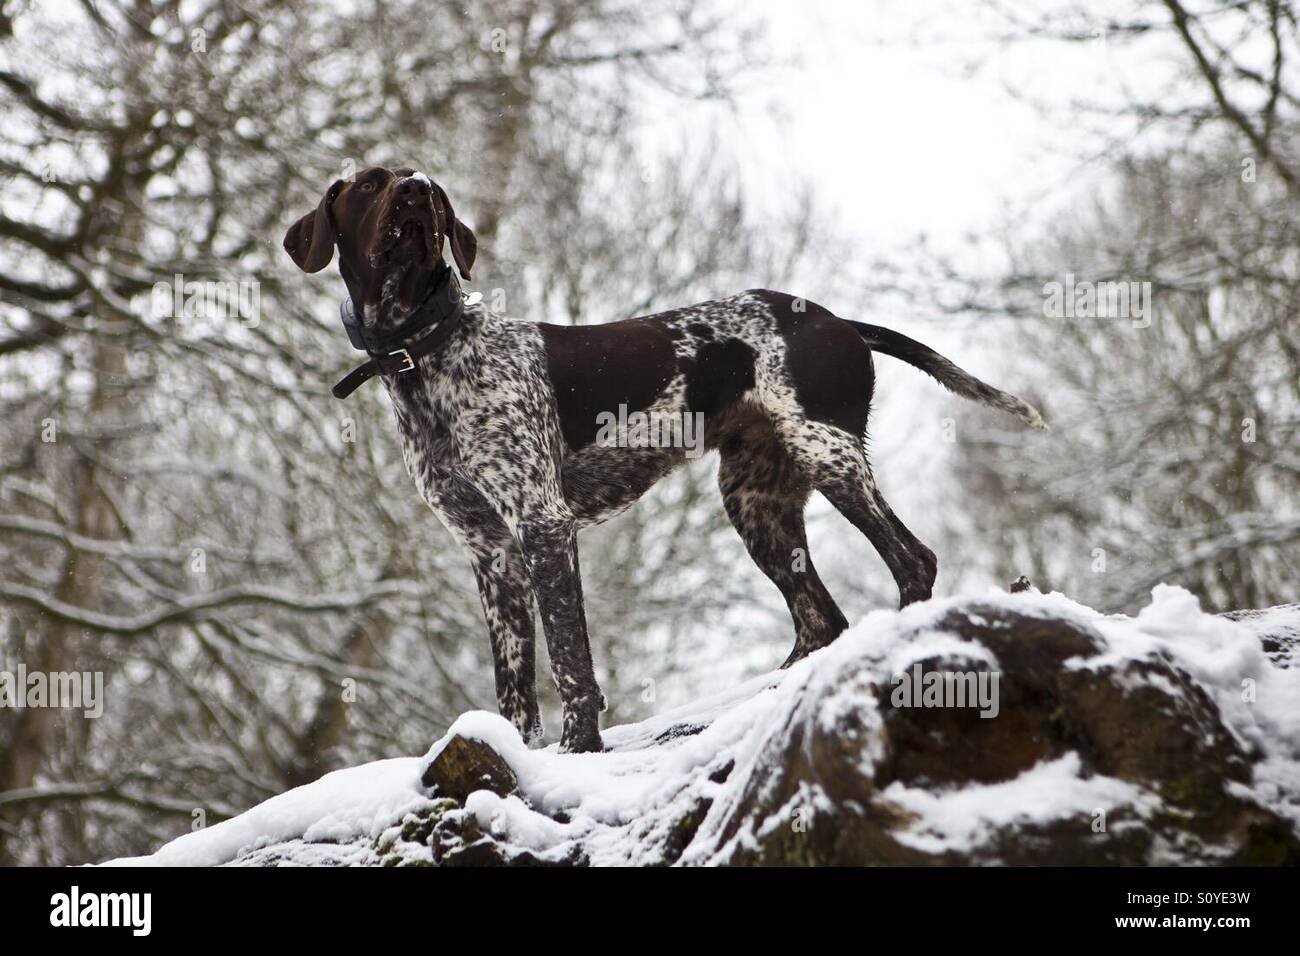 German Shorthaired Pointer dog in snow - Stock Image